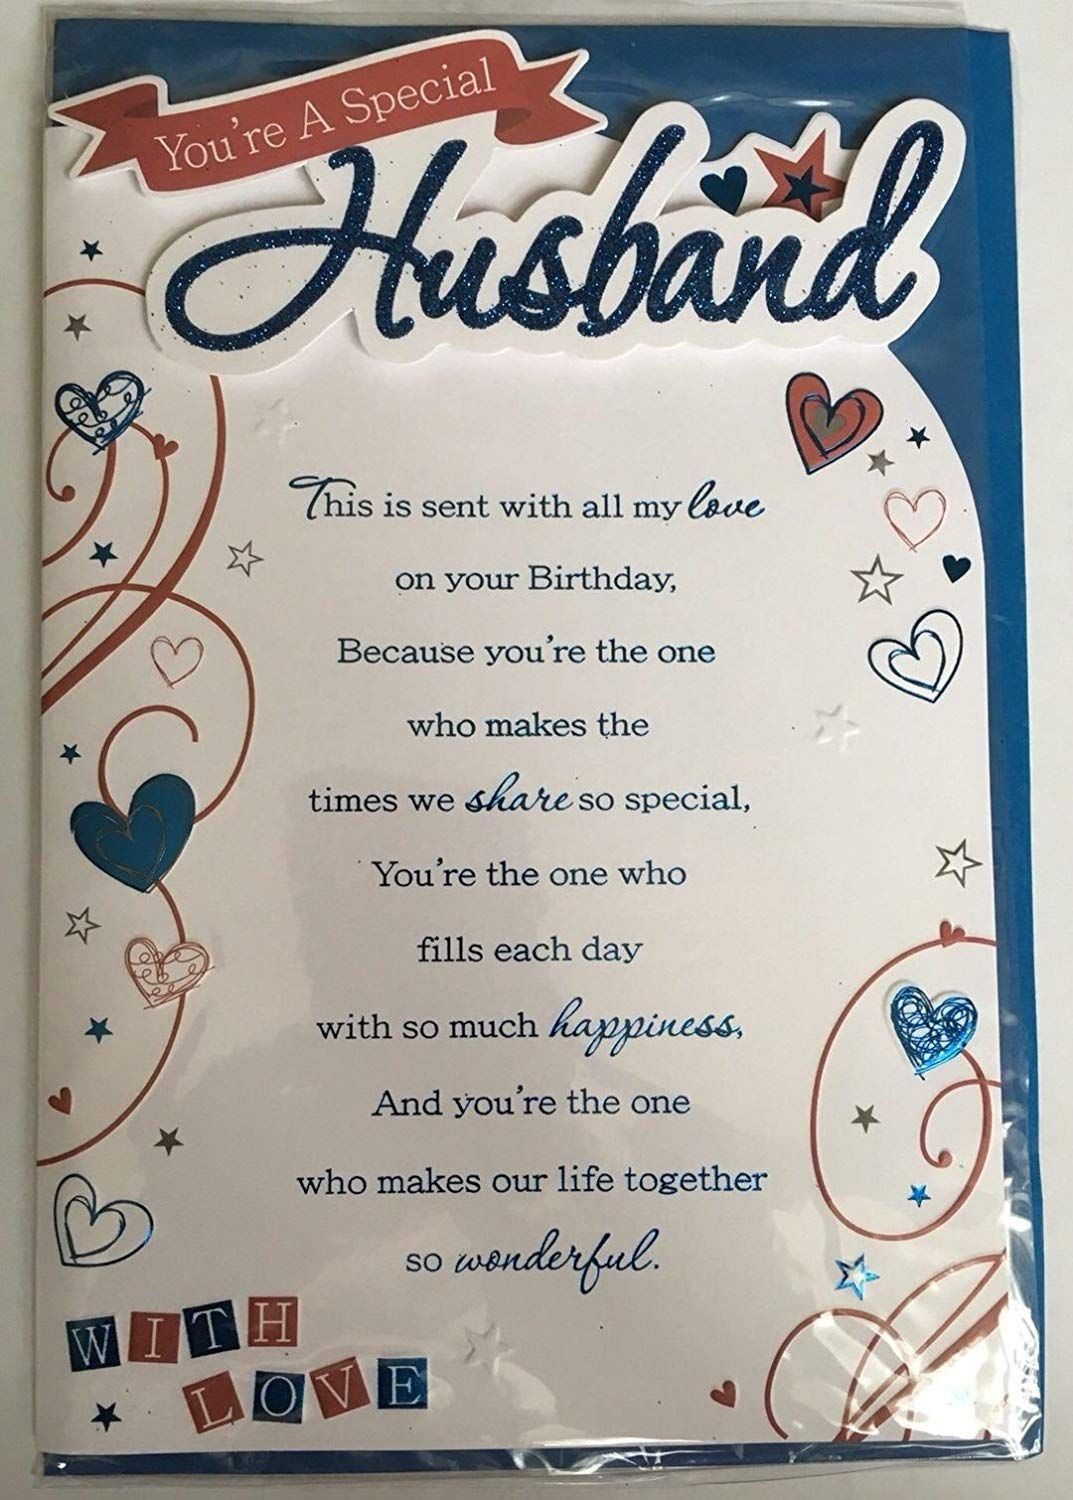 You Re A Special Husband With Love 3d Birthday Greeting Card Amazon C Birthday Message For Husband Happy Birthday Husband Quotes Birthday Wish For Husband